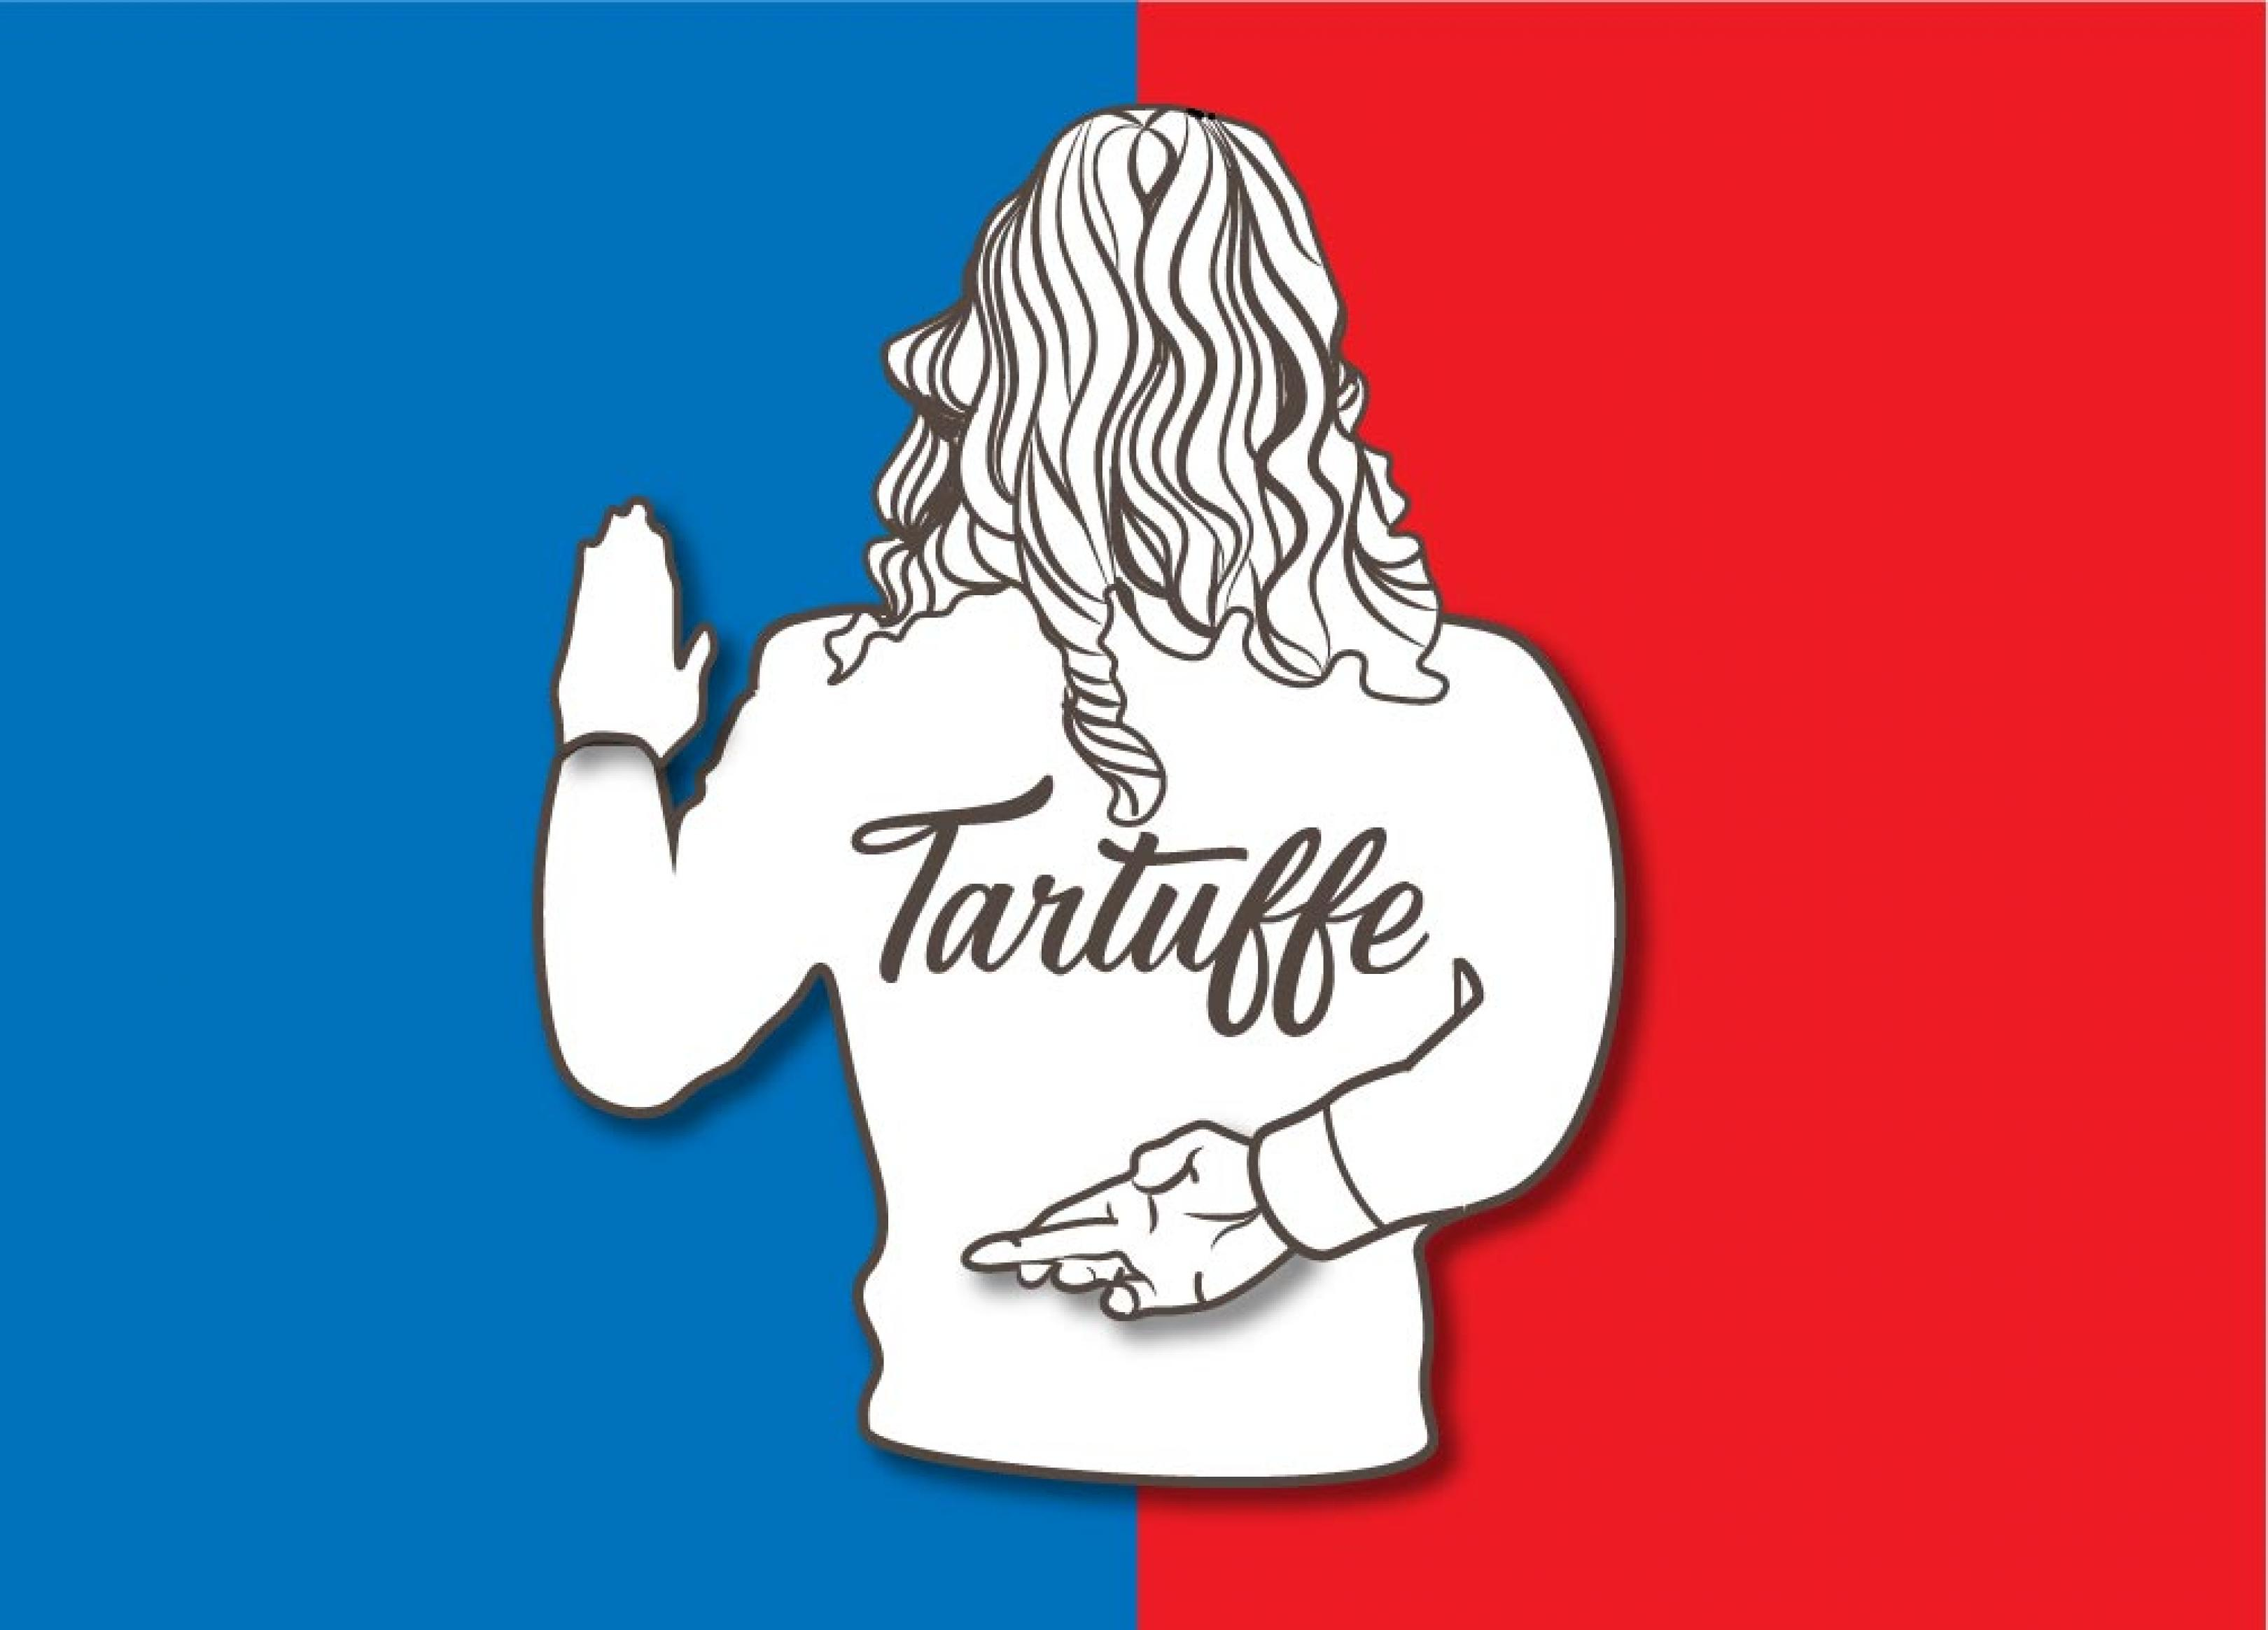 publicity image for Tartuffe